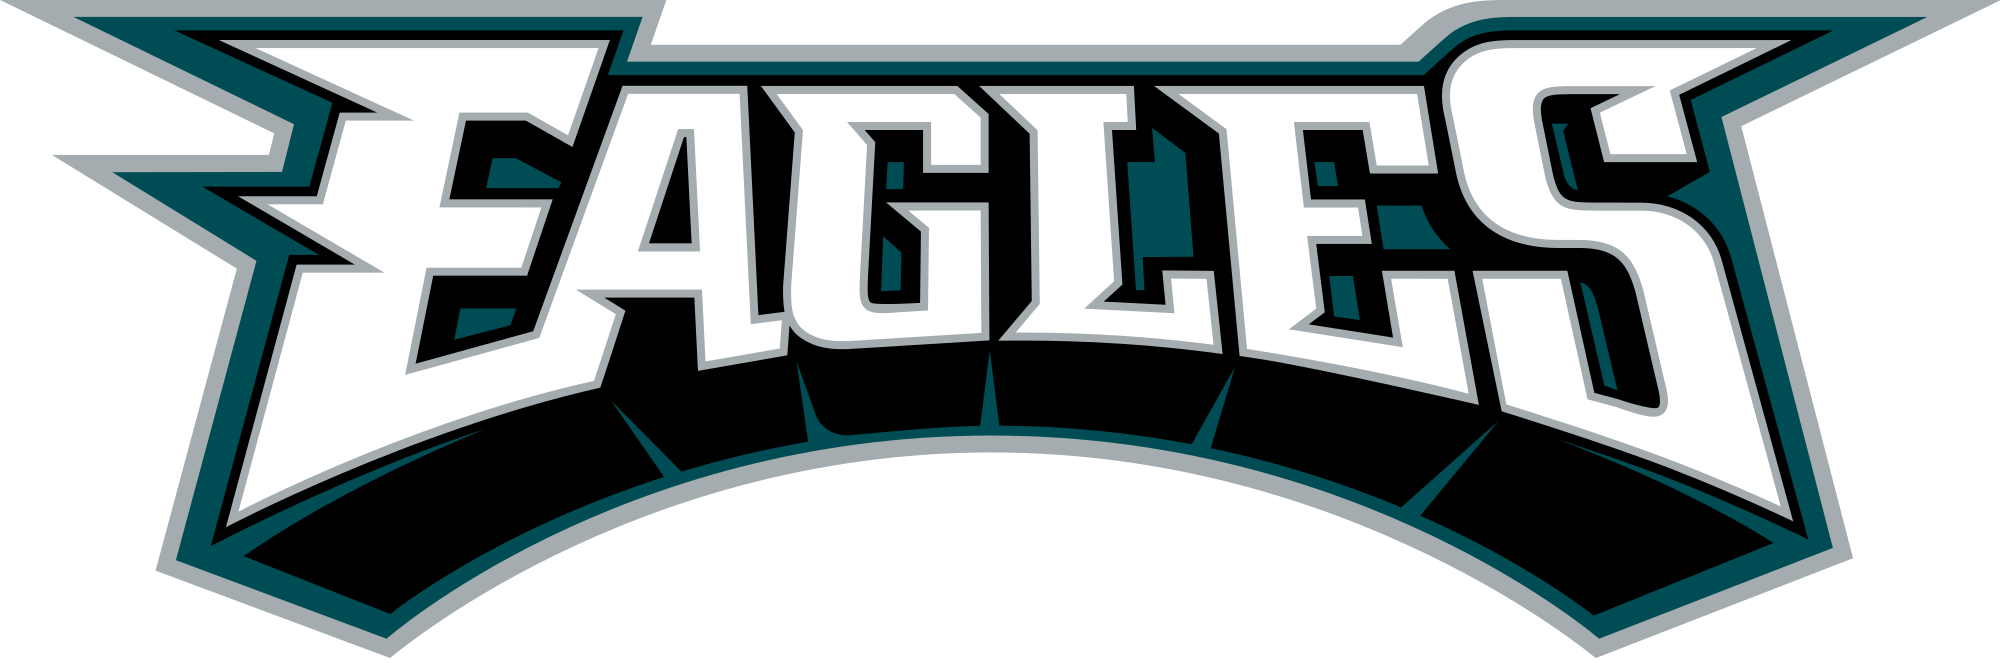 Redskins svg old. File philadelphia eagles wordmark